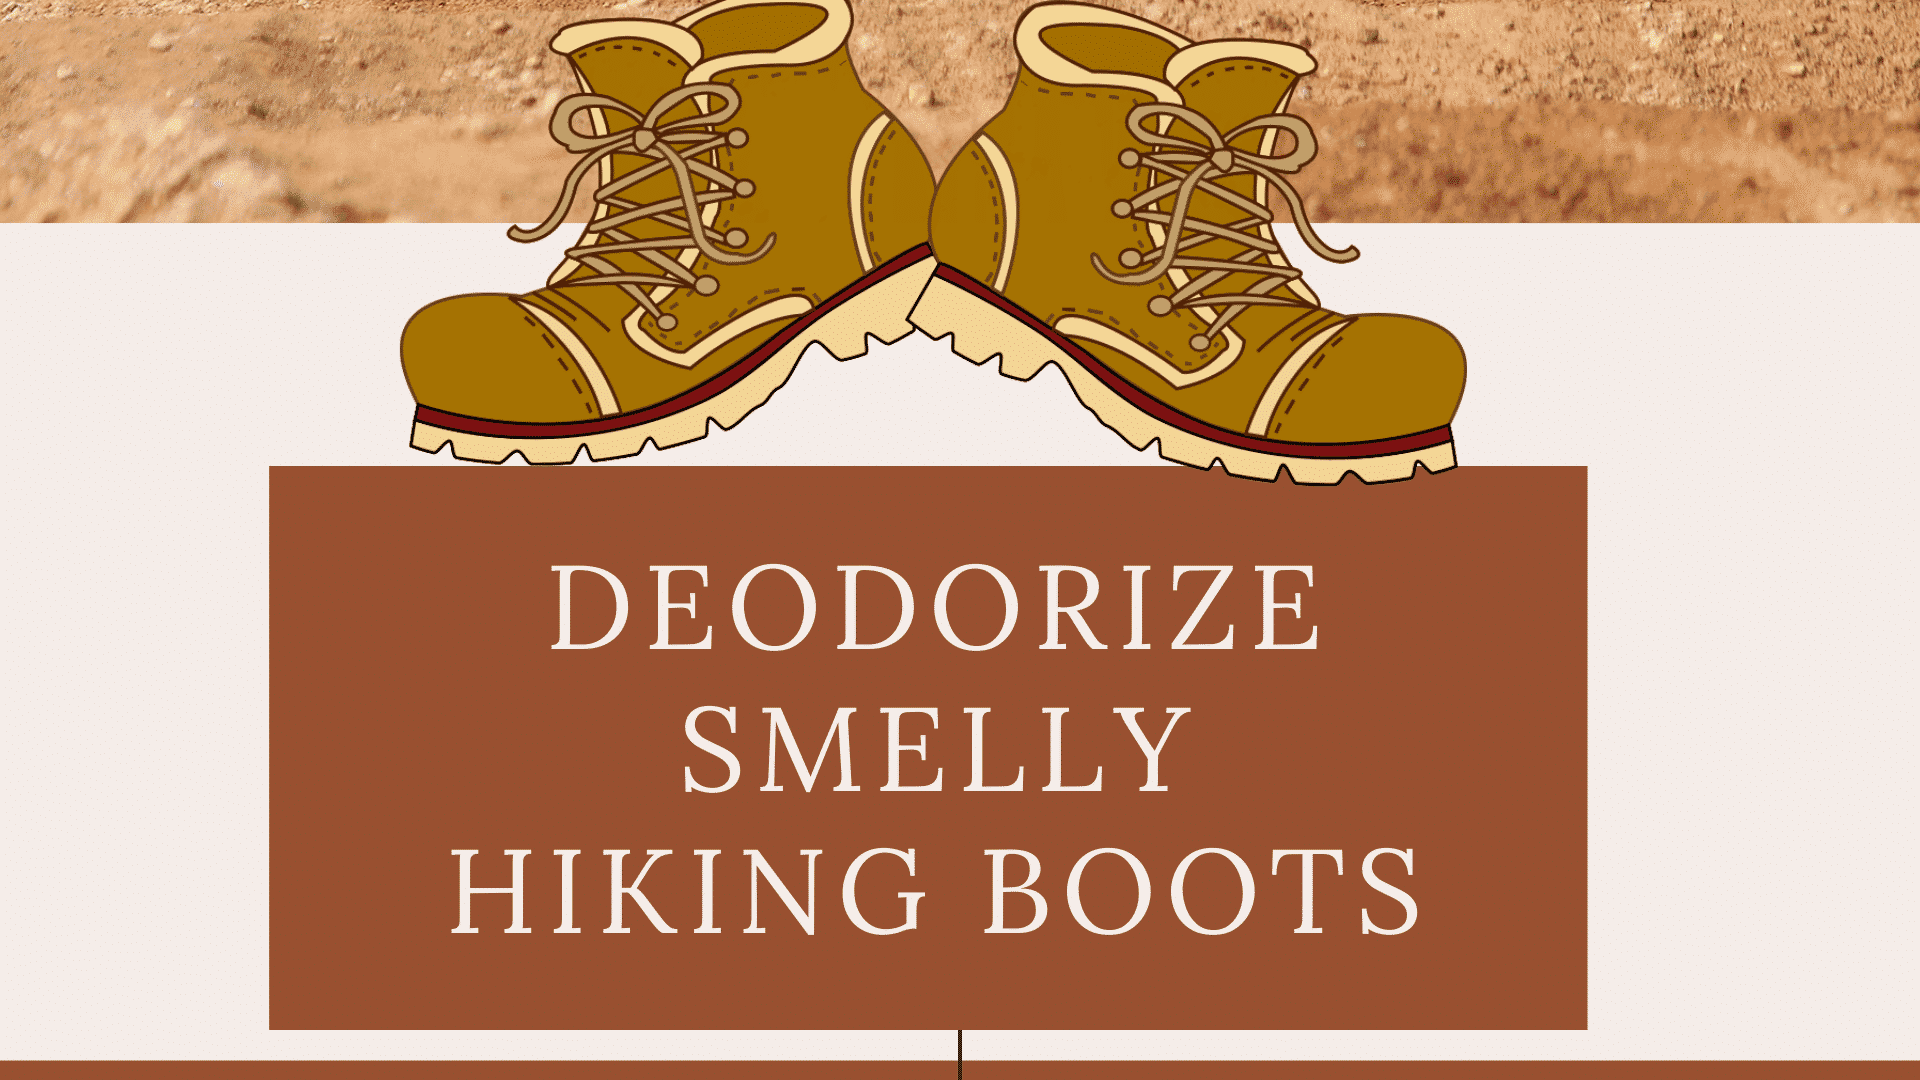 How to Deodorize Smelly Hiking Boots